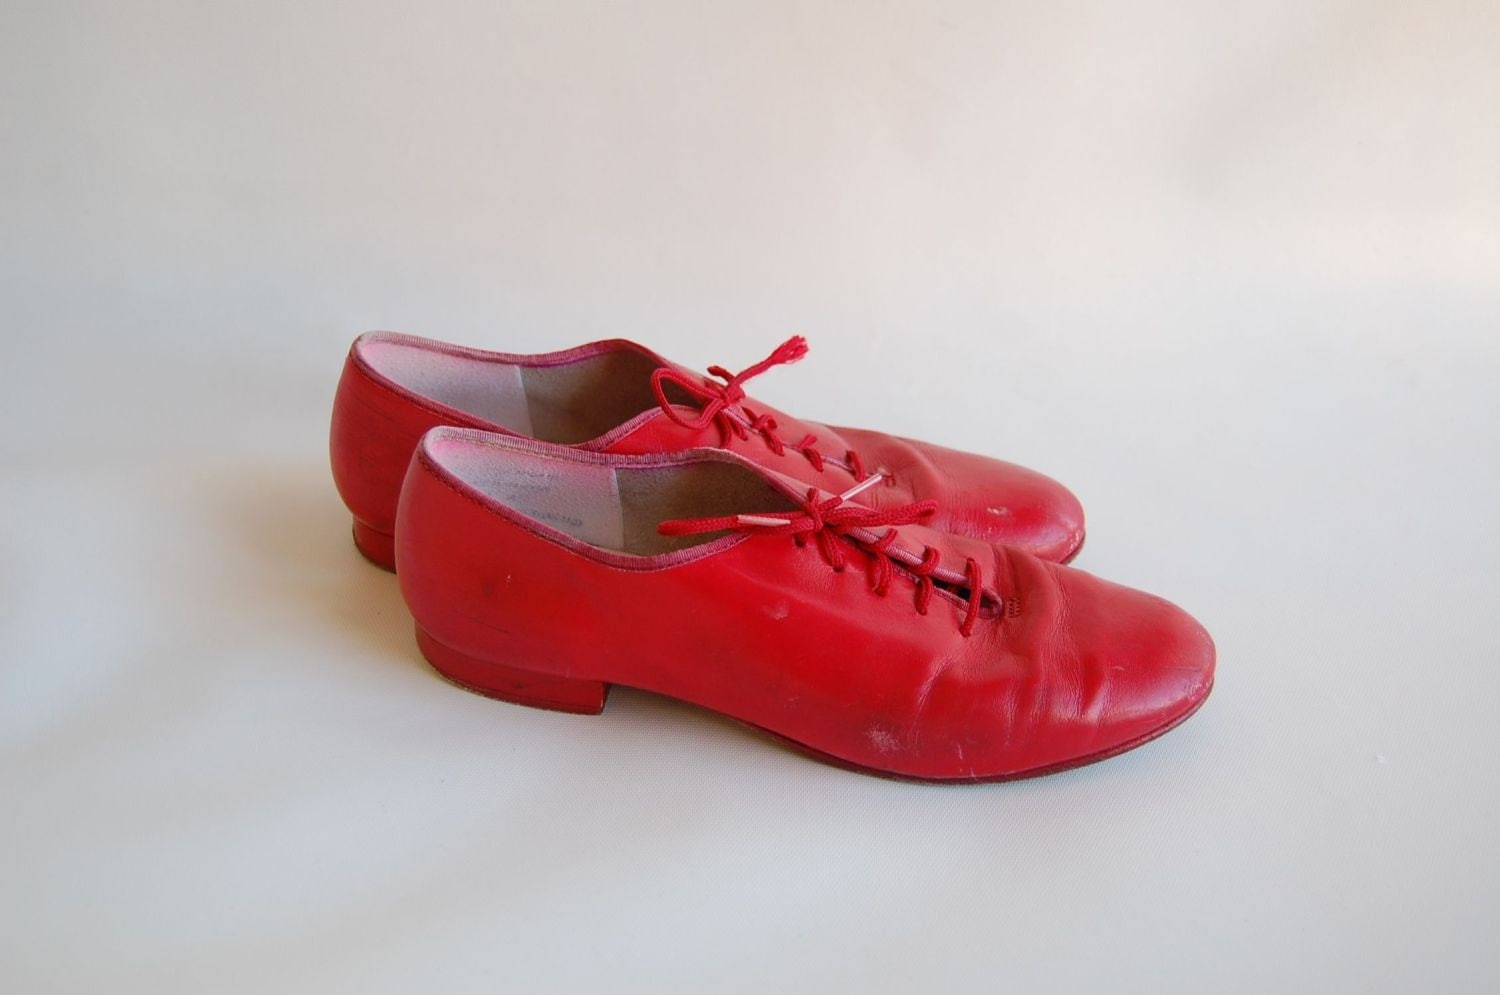 Lipstick Red Jazz OXFORD Shoes 7